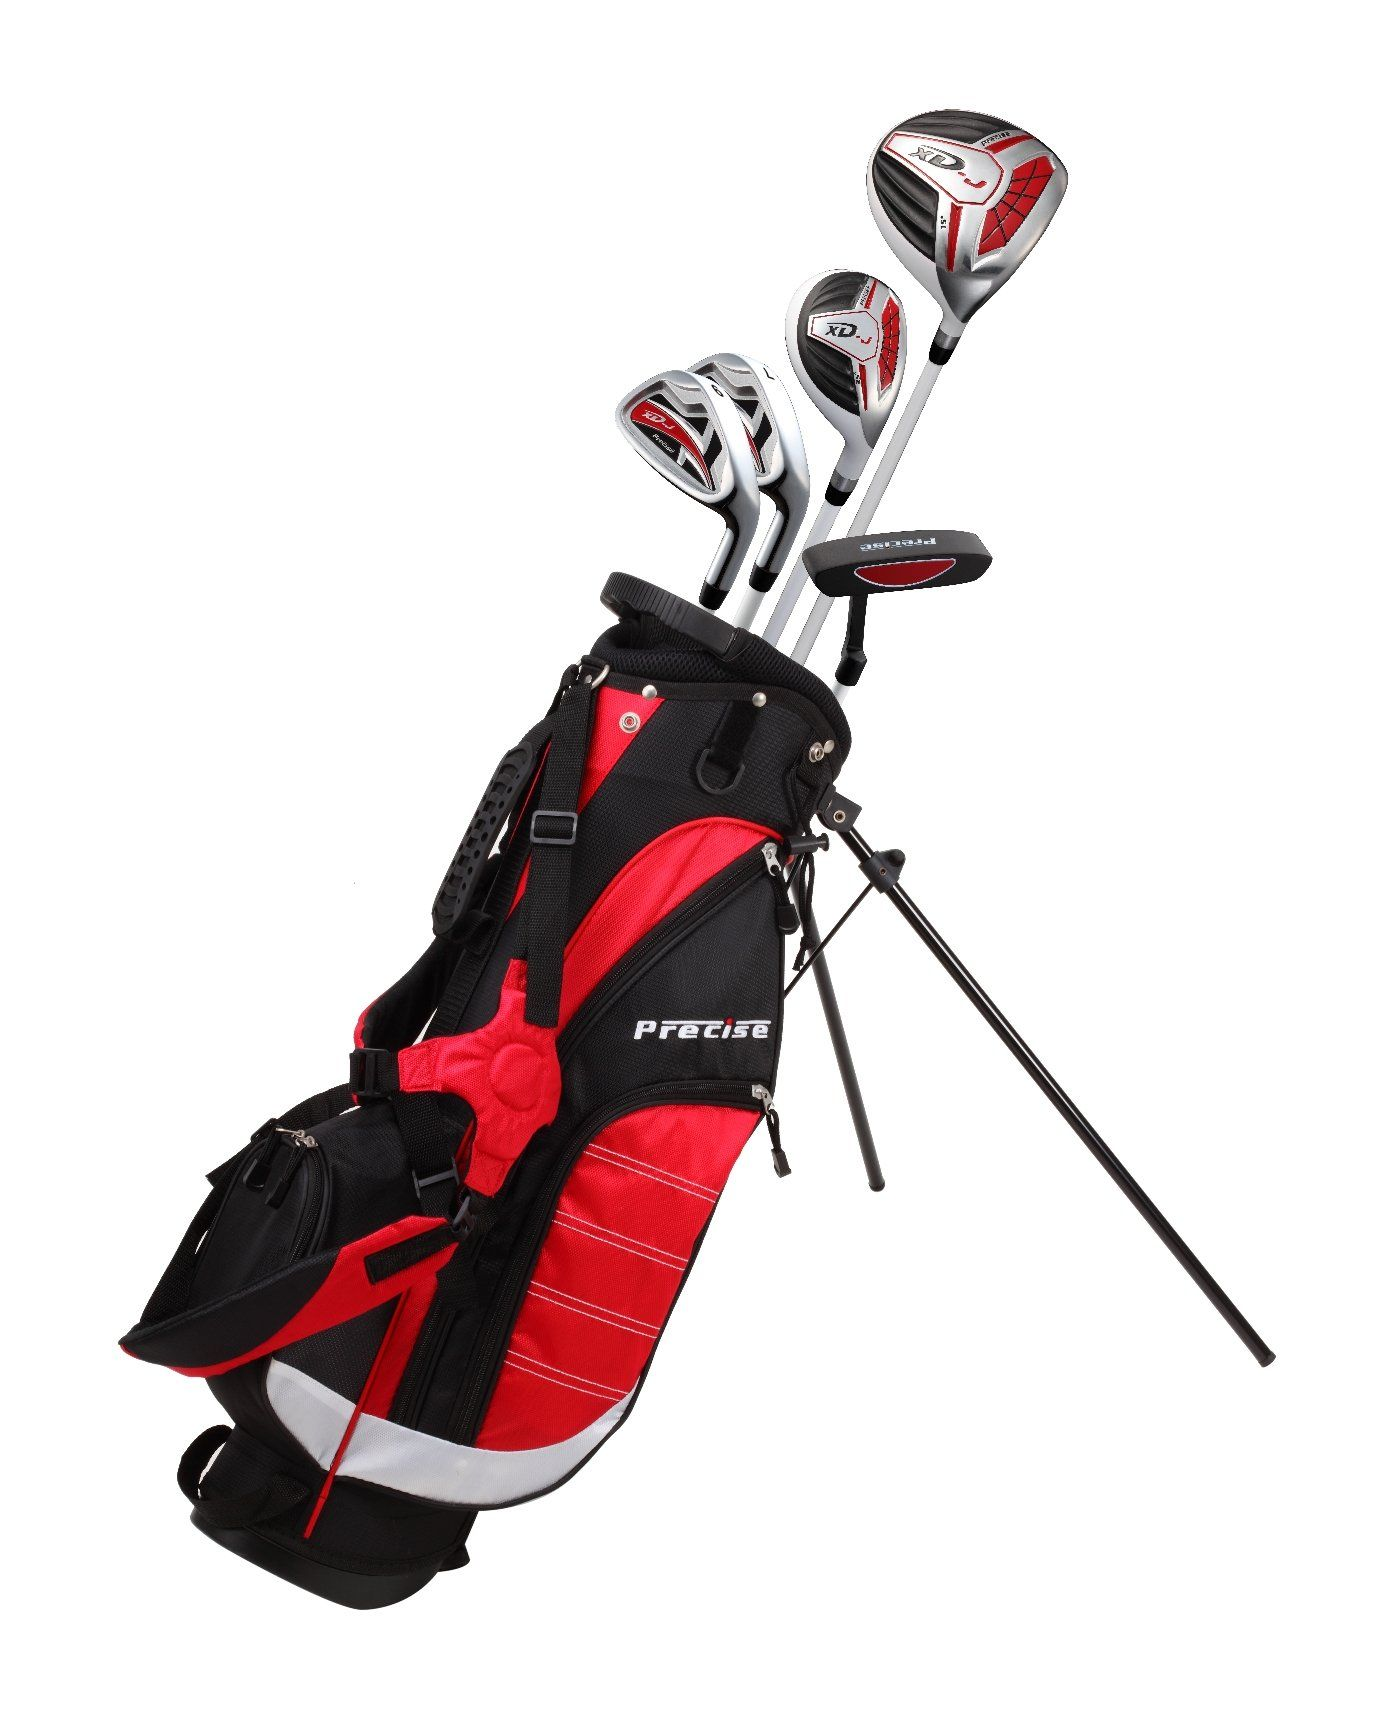 2f58a1f2e7 Golf Bag     Precise Remarkable Right Handed Junior Golf Club Set for Age 6  to 8 Height 38 to 44 Set Includes  Driver 15 Hybrid Wood 25 7 9 Iron Putter  ...